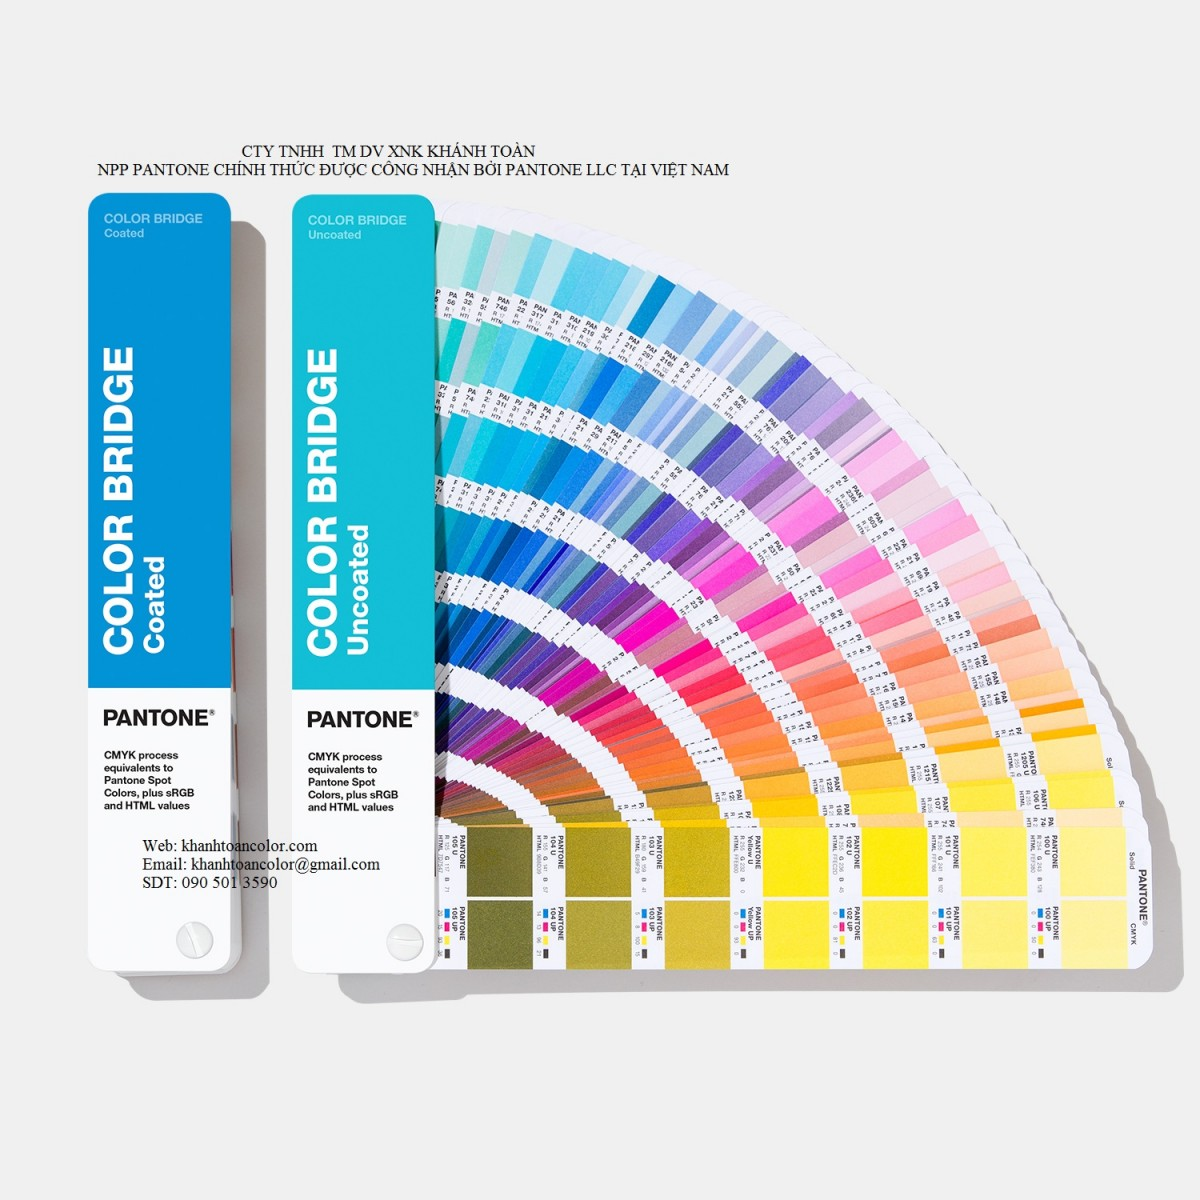 khanhtoancolor.com - Pantone Color Bridge GP6102A (New 2019)